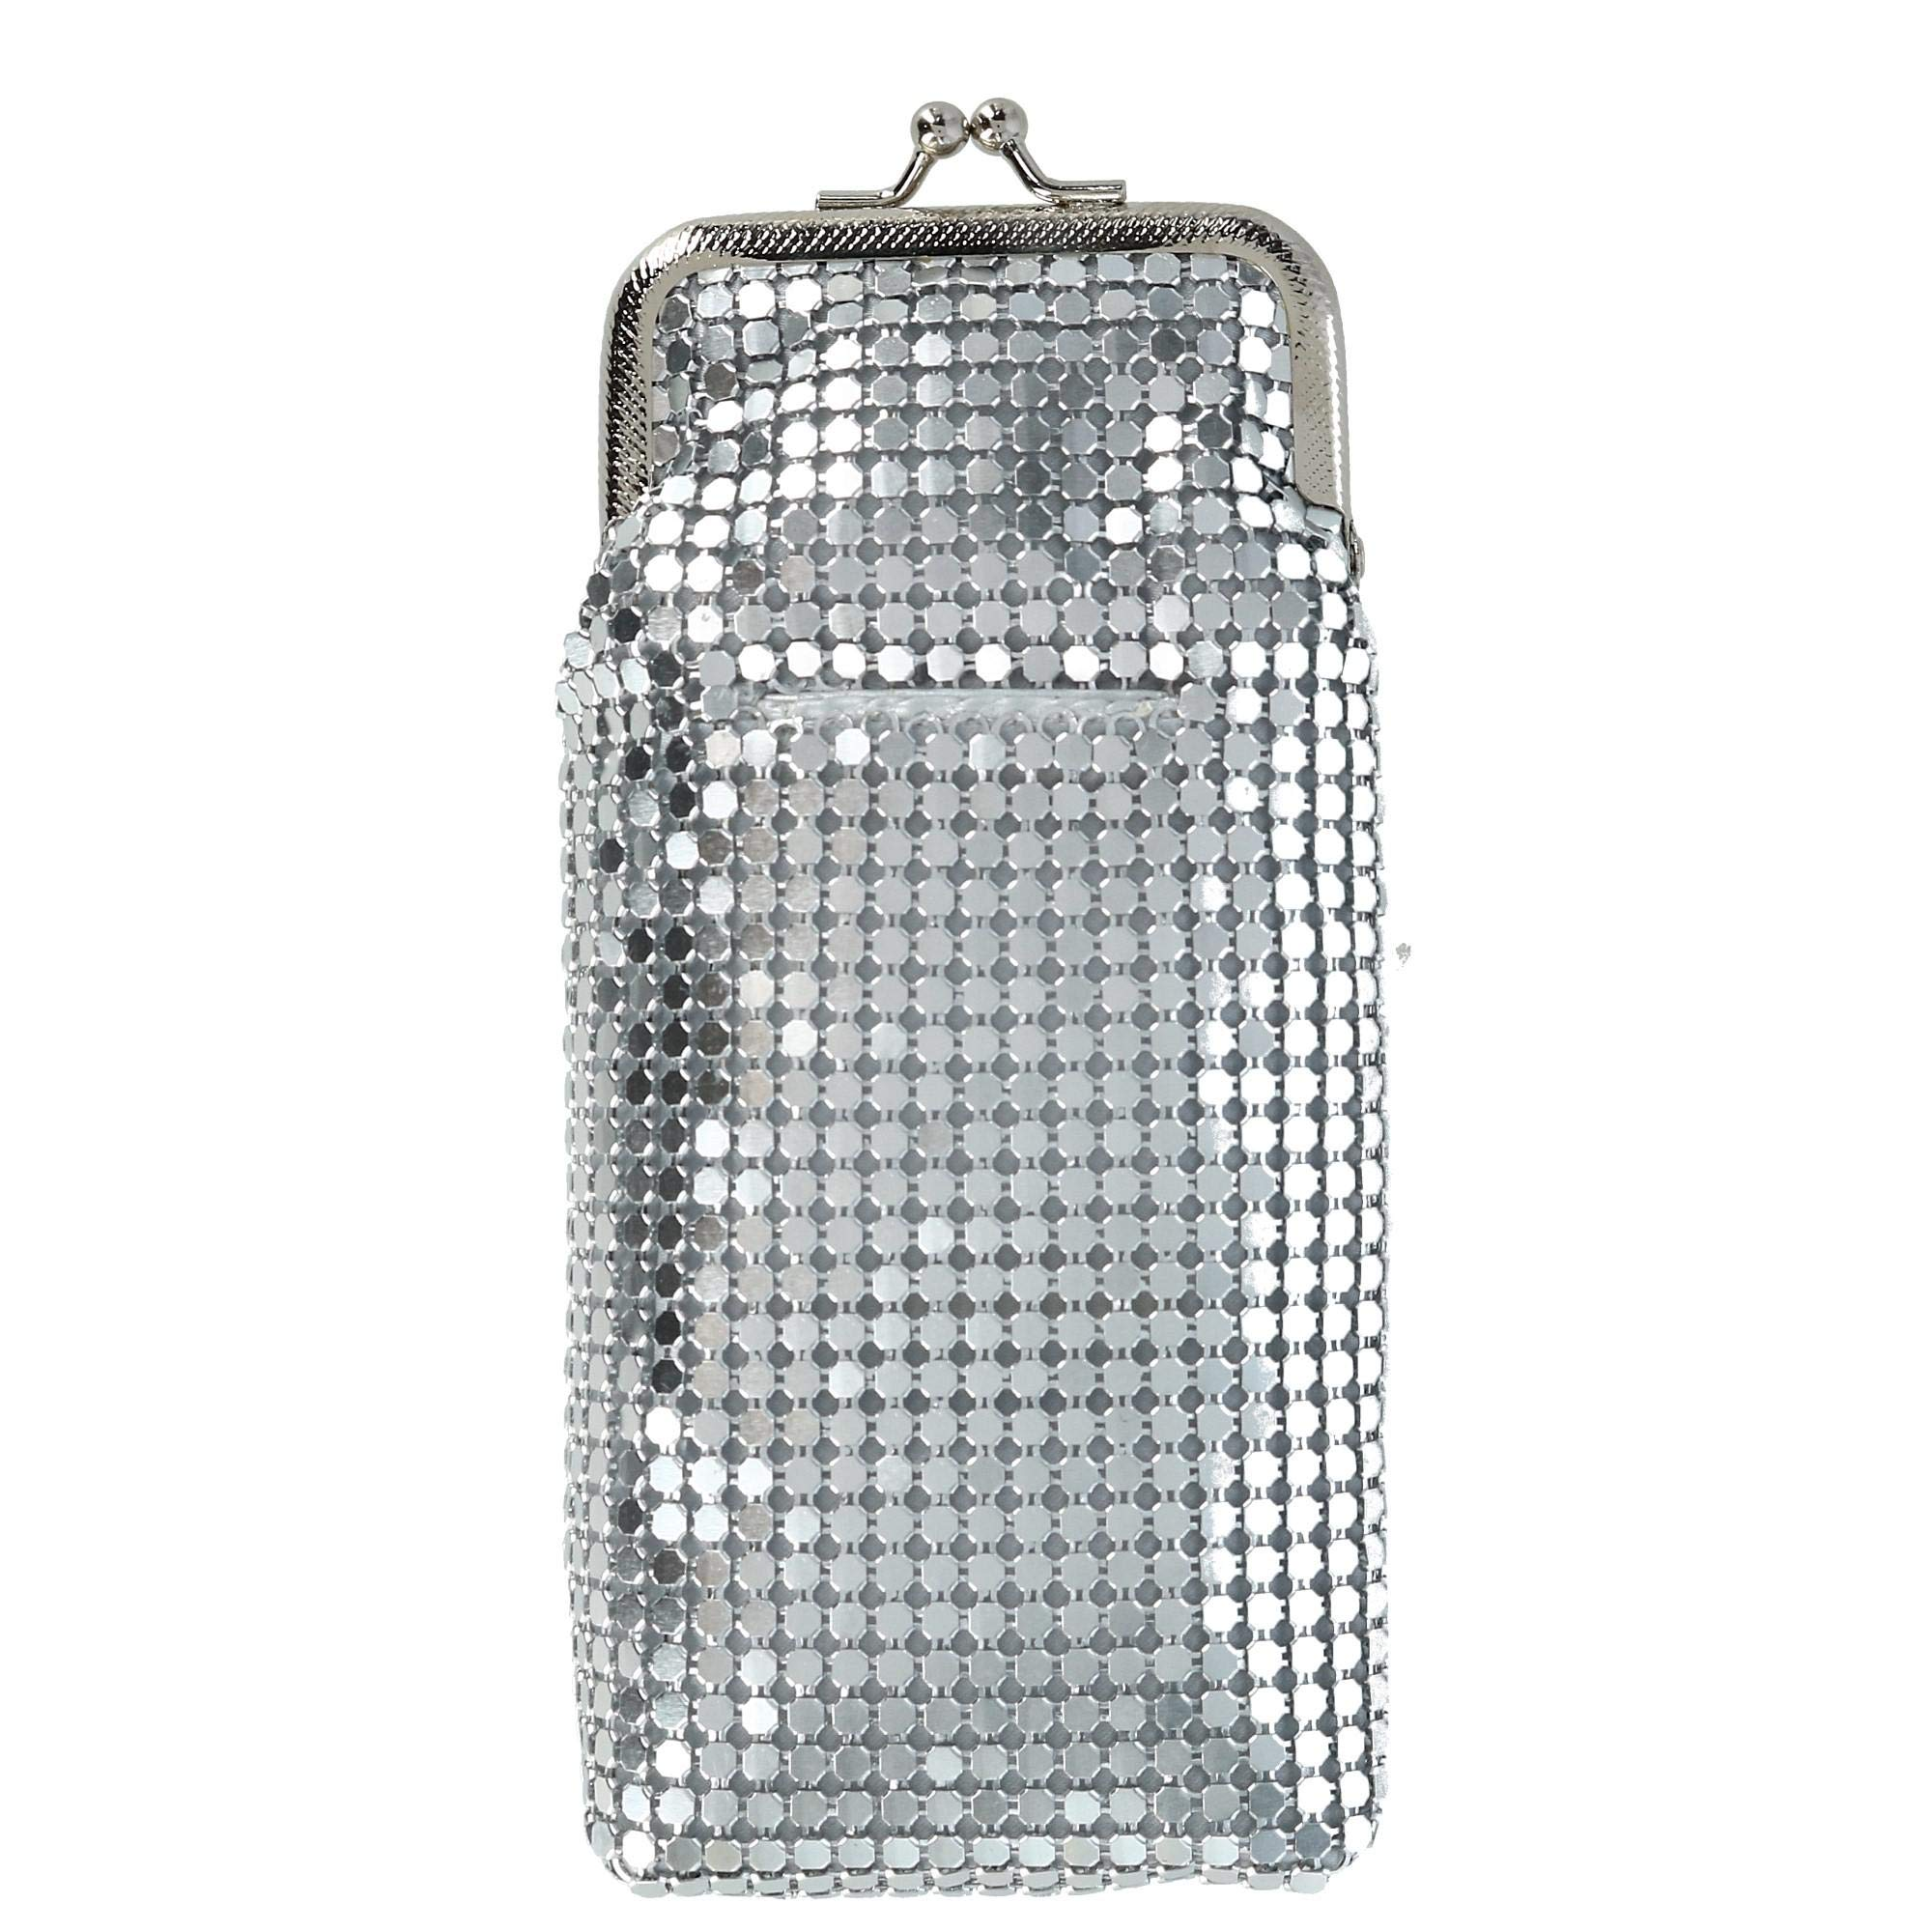 CTM Women's Mesh Cigarette Case with Lighter Pocket and Kiss Lock Closure, Silver